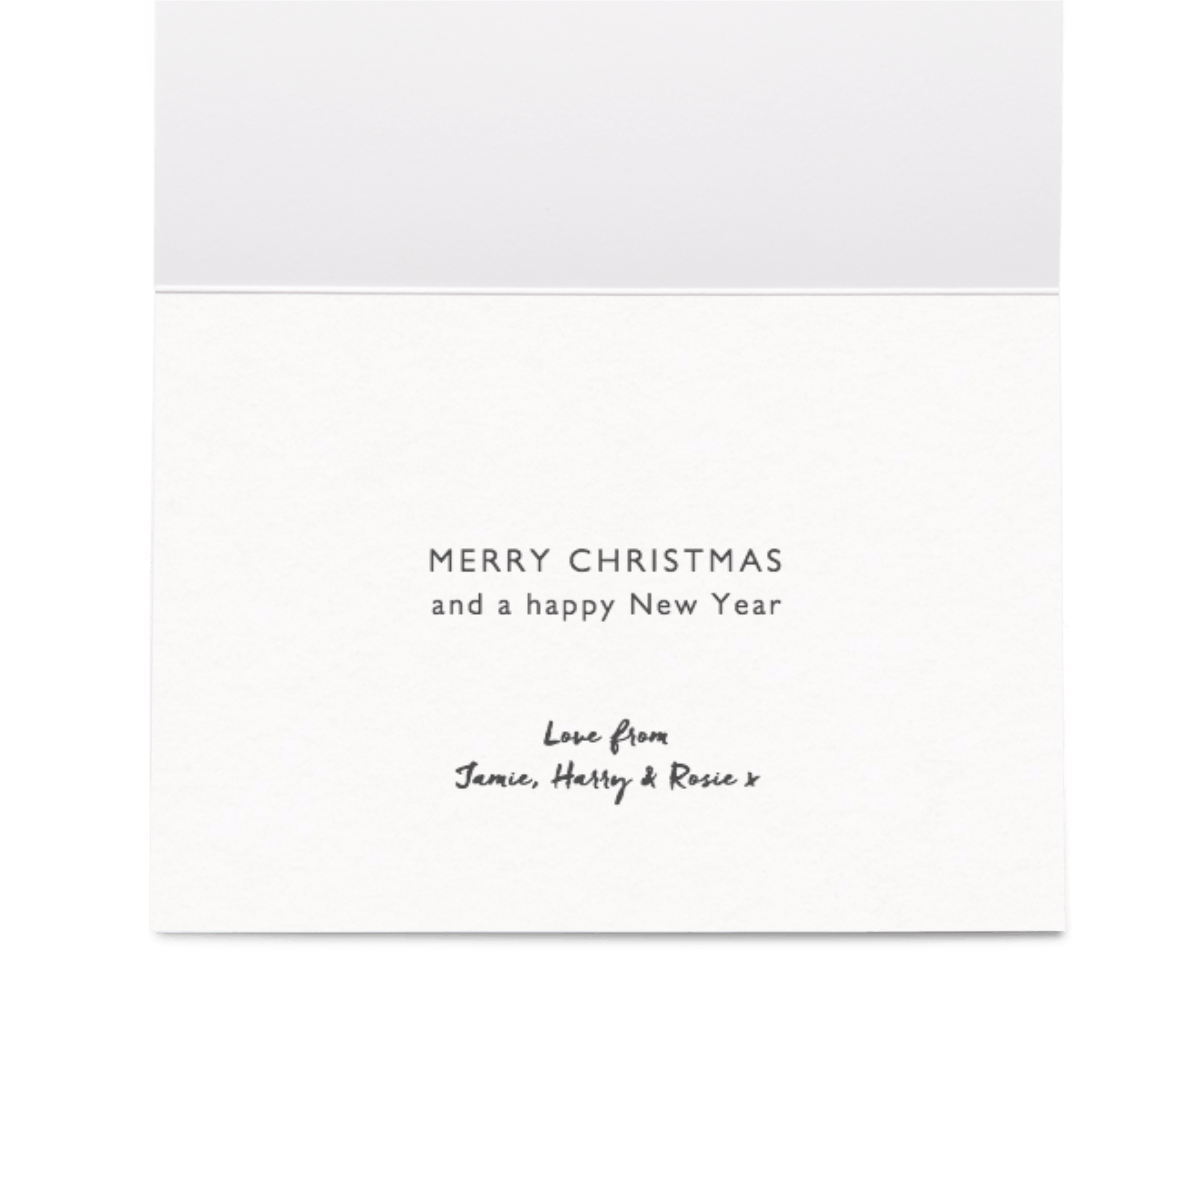 Https%3a%2f%2fwww.papier.com%2fproduct image%2f10522%2f20%2fi believe in santa claus 2681 interieur 1477932125.png?ixlib=rb 1.1